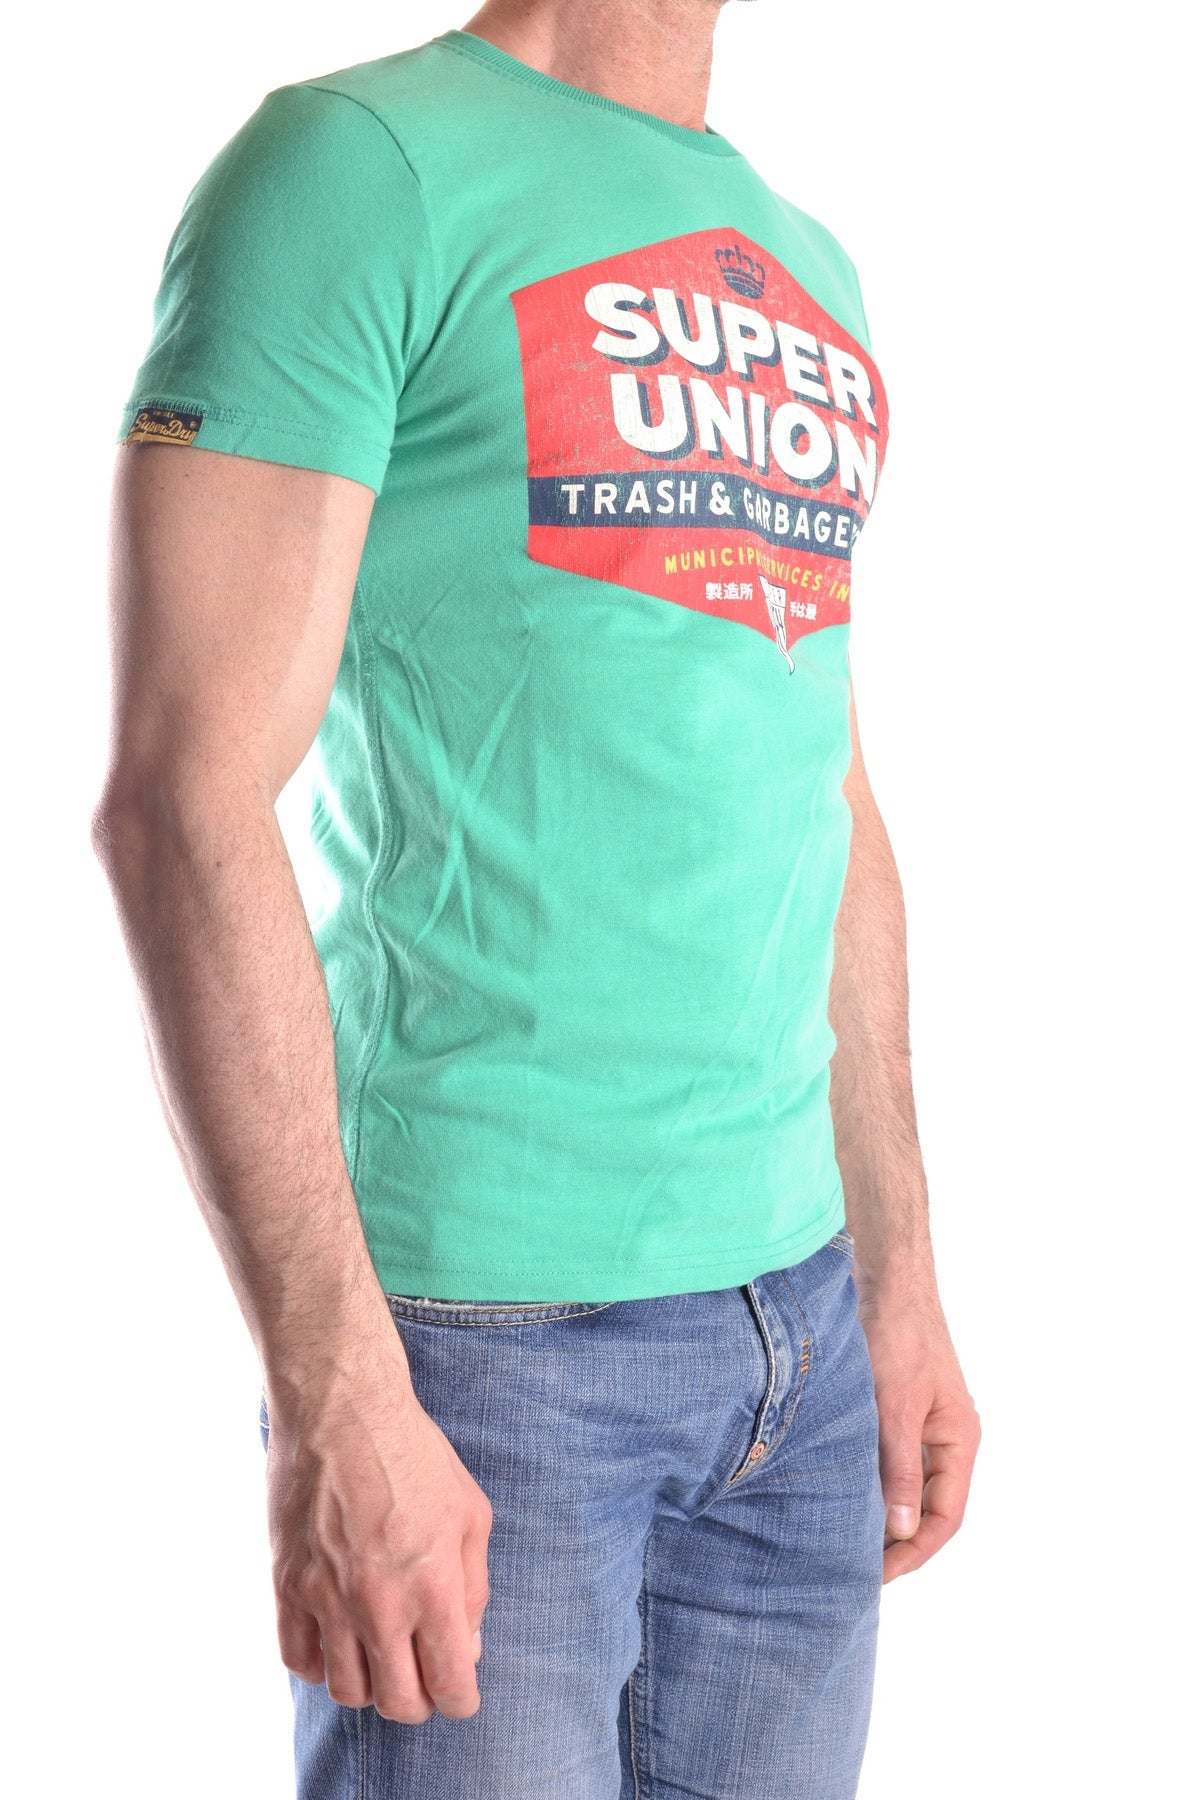 T-Shirt Superdry-Men's Fashion - Men's Clothing - Tops & Tees - T-Shirts-Product Details Terms: New With LabelClothing Type: T-ShirtMain Color: GreenSeason: Spring / SummerMade In: TurcheyGender: ManSize: IntComposition: Cotton 100%Year: 2017-Keyomi-Sook